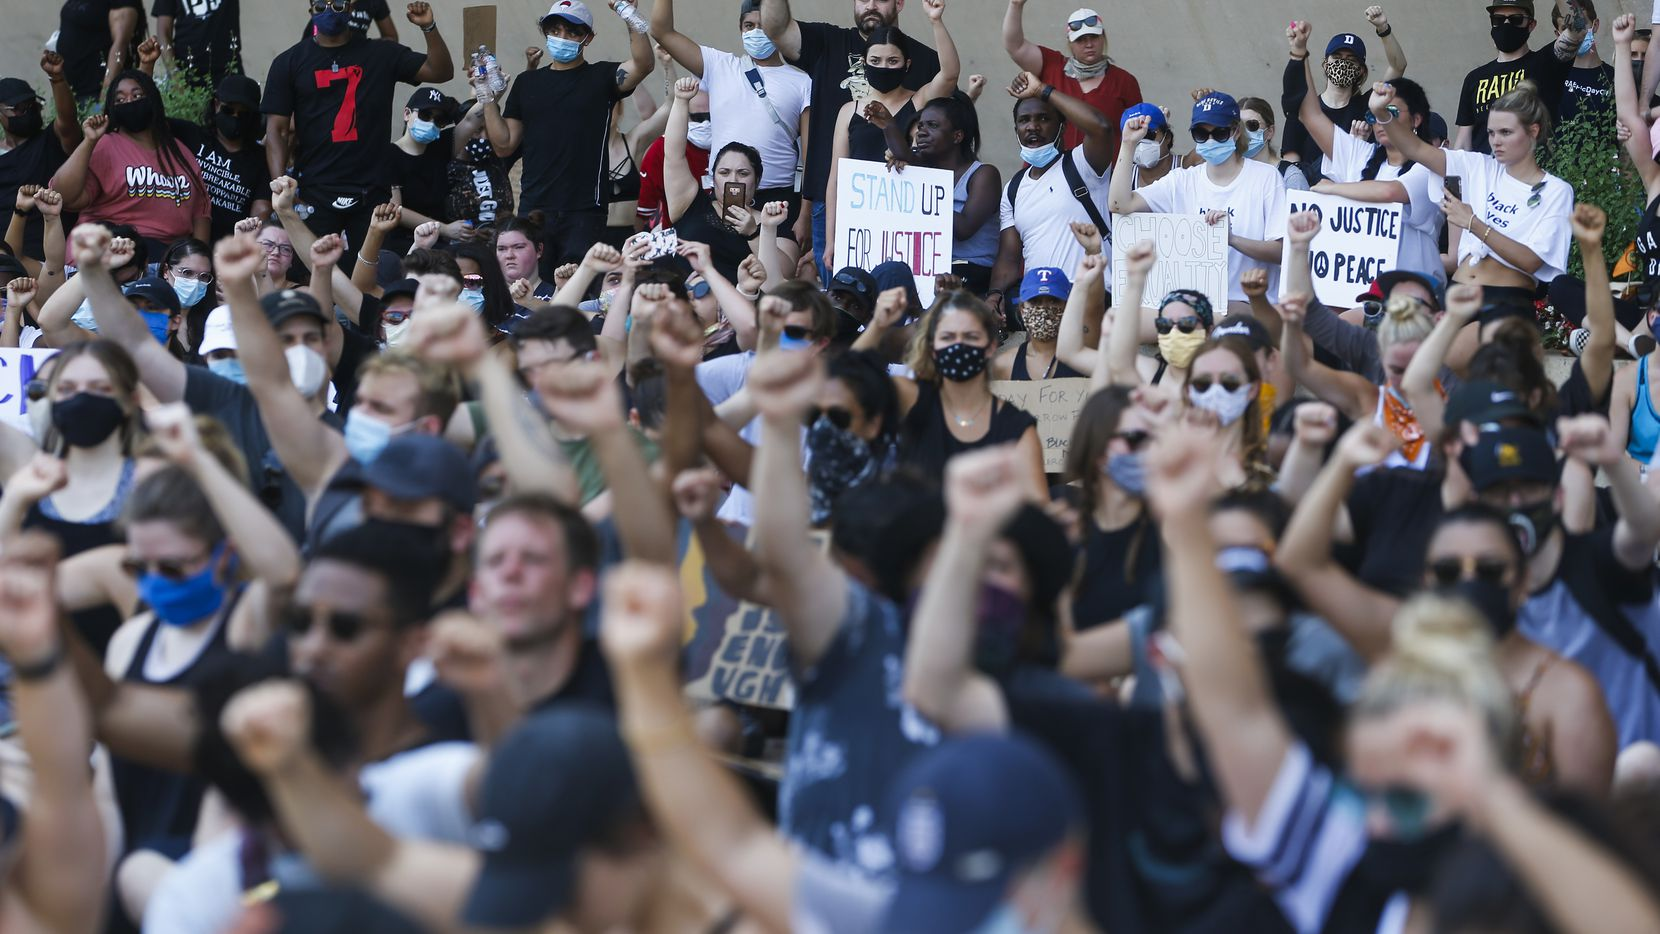 Protesters gathered at Dallas City Hall for an 8-minute, 46-second period of silence after marching from Klyde Warren Park during a demonstration against police brutality on June 6. Some people wore masks, but there was little social distancing.